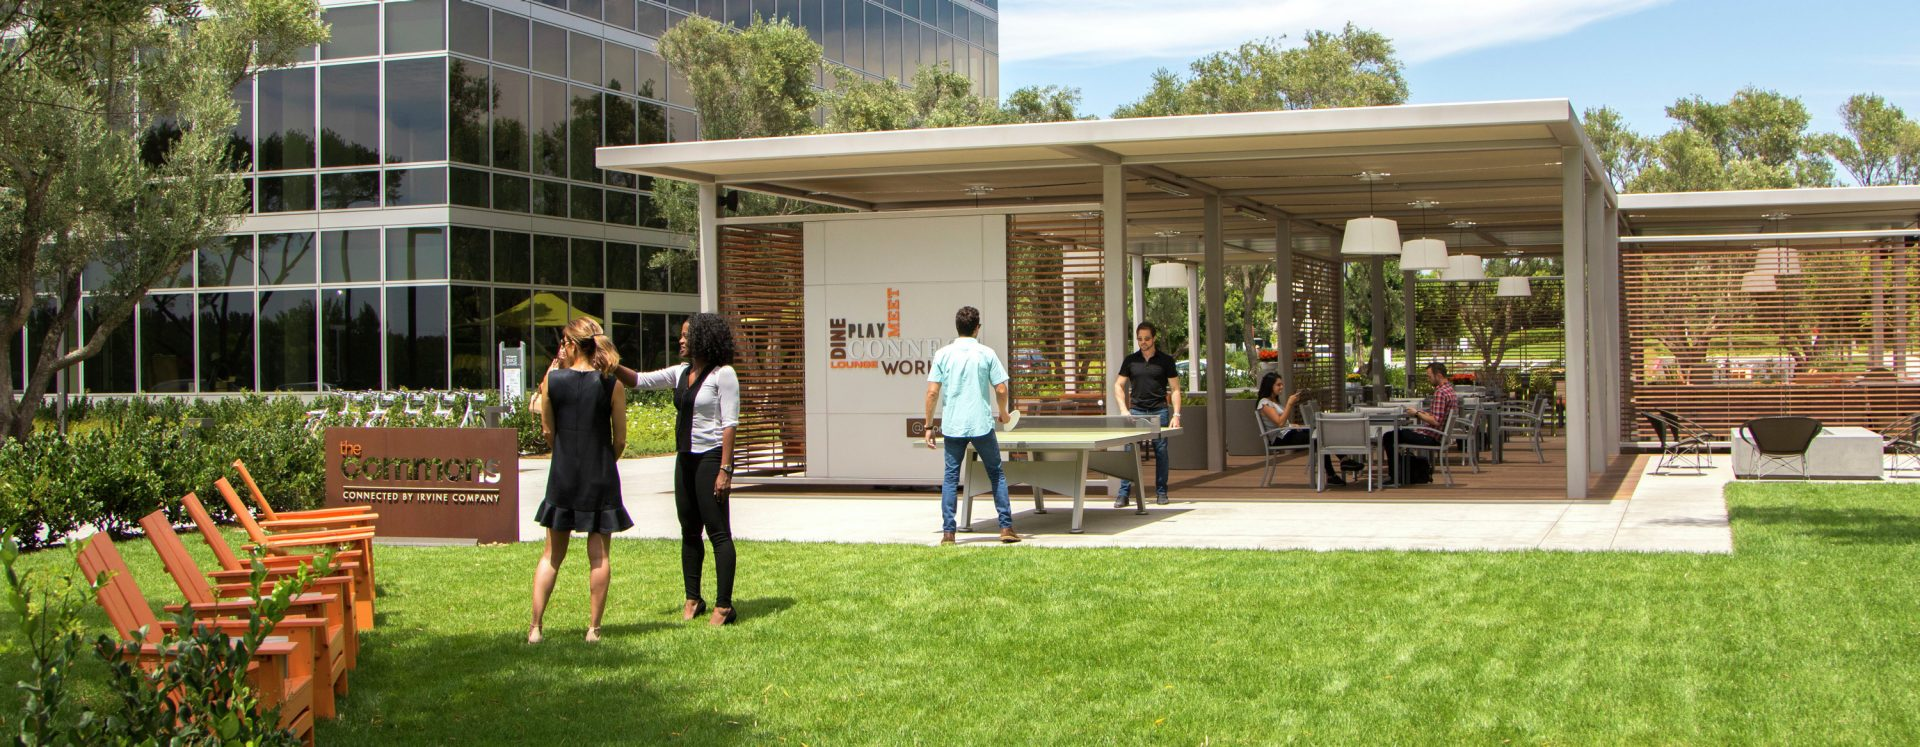 Outdoor workspace / The Commons photography at Sand Canyon Business Center in Irvine, CA